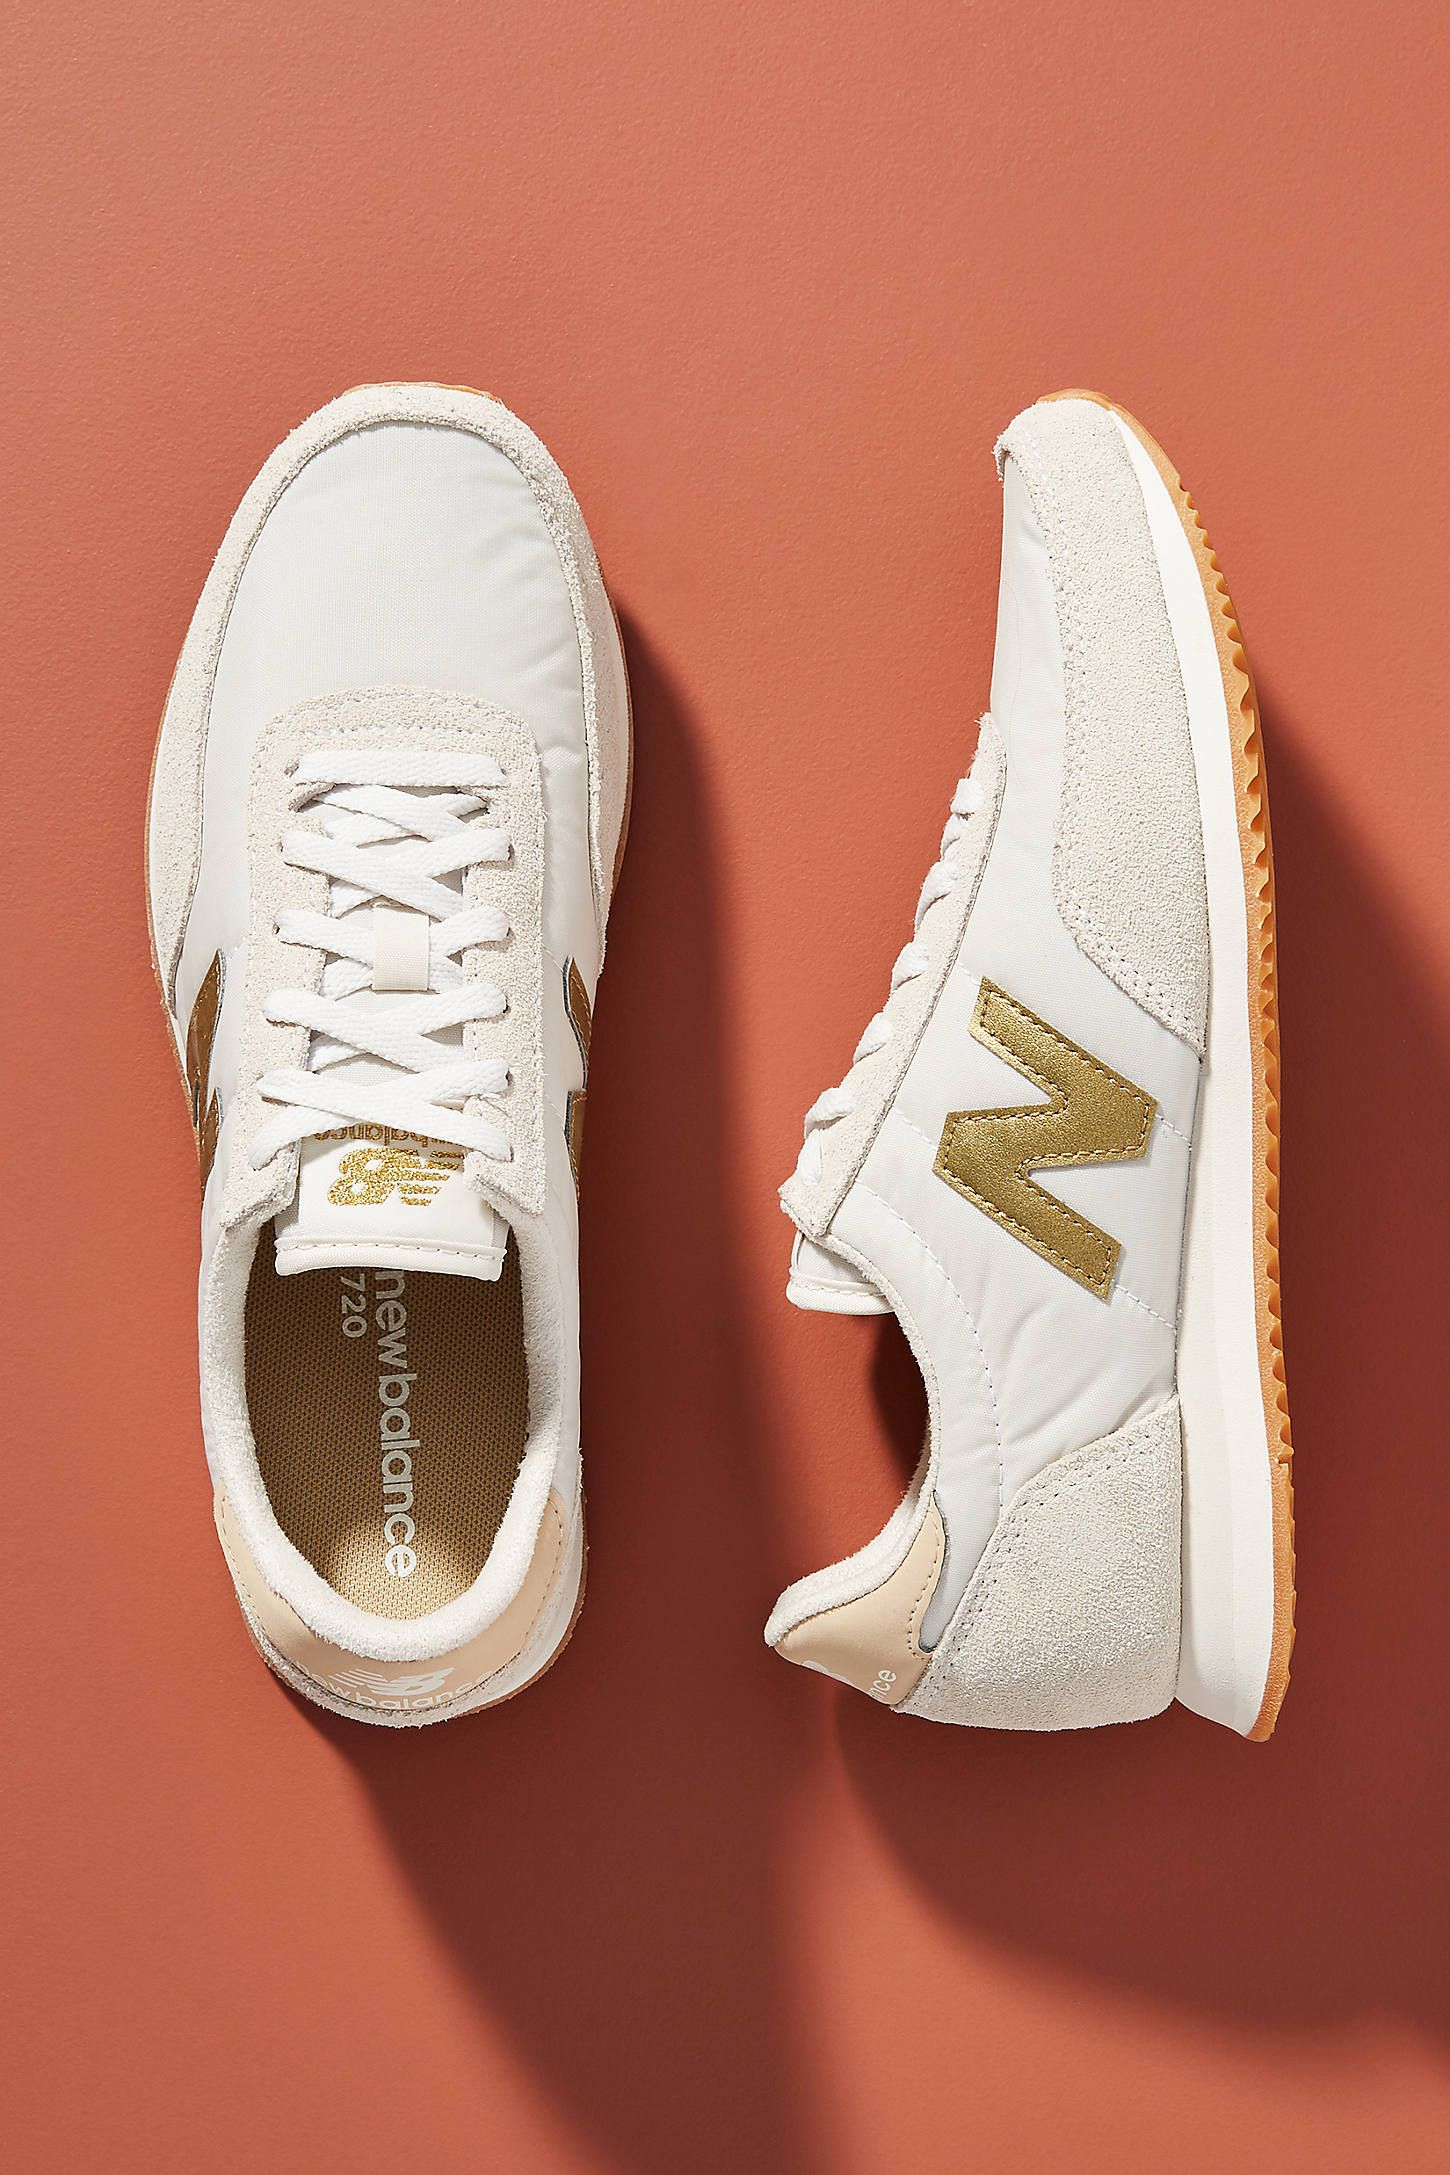 New Balance 720 Sneakers In White